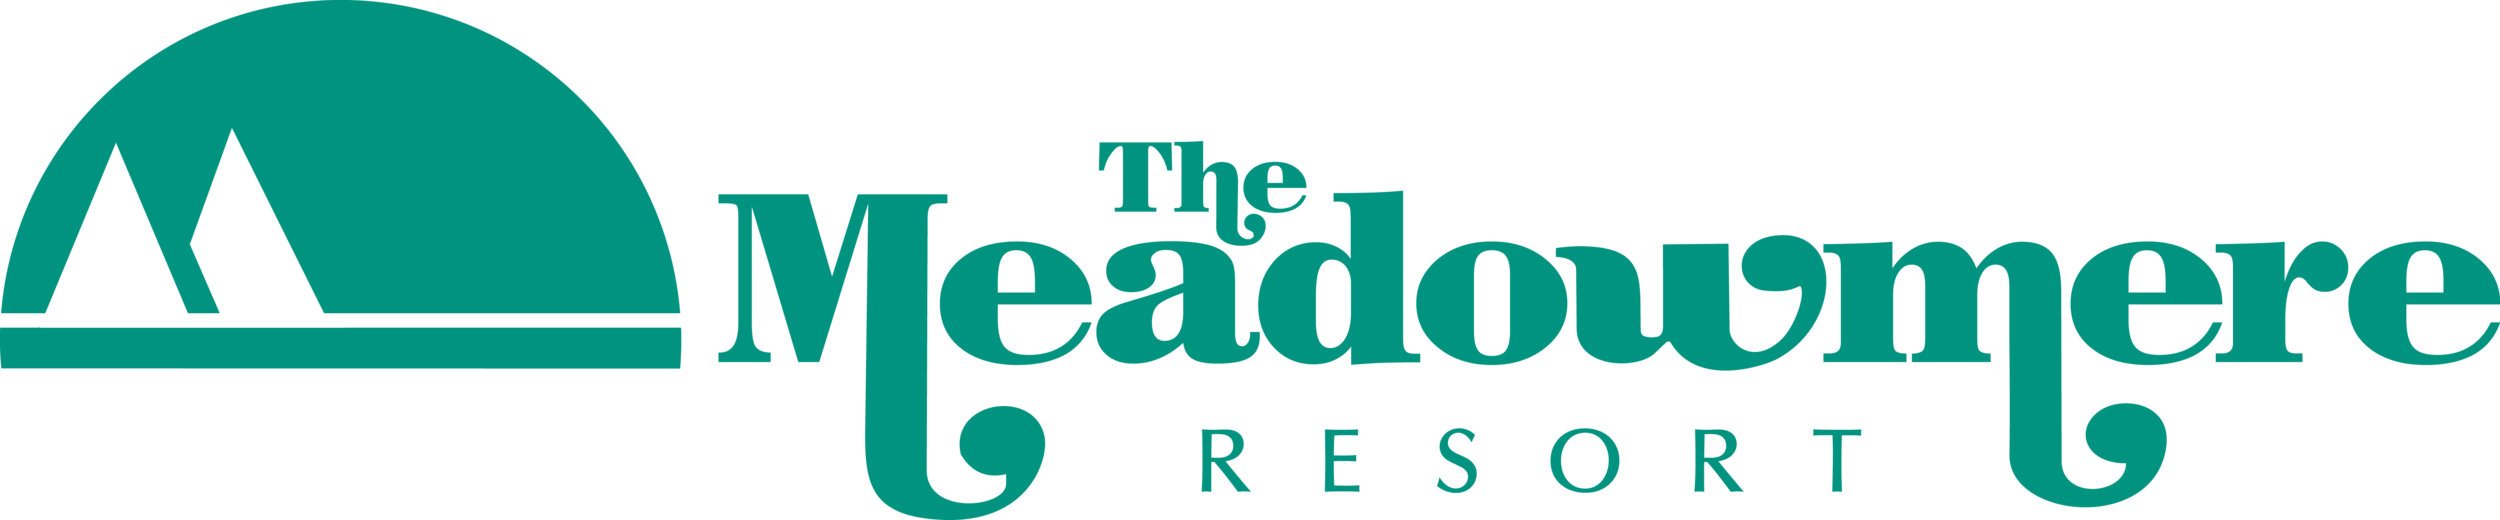 Meadowmere logo_LONG LARGE.png